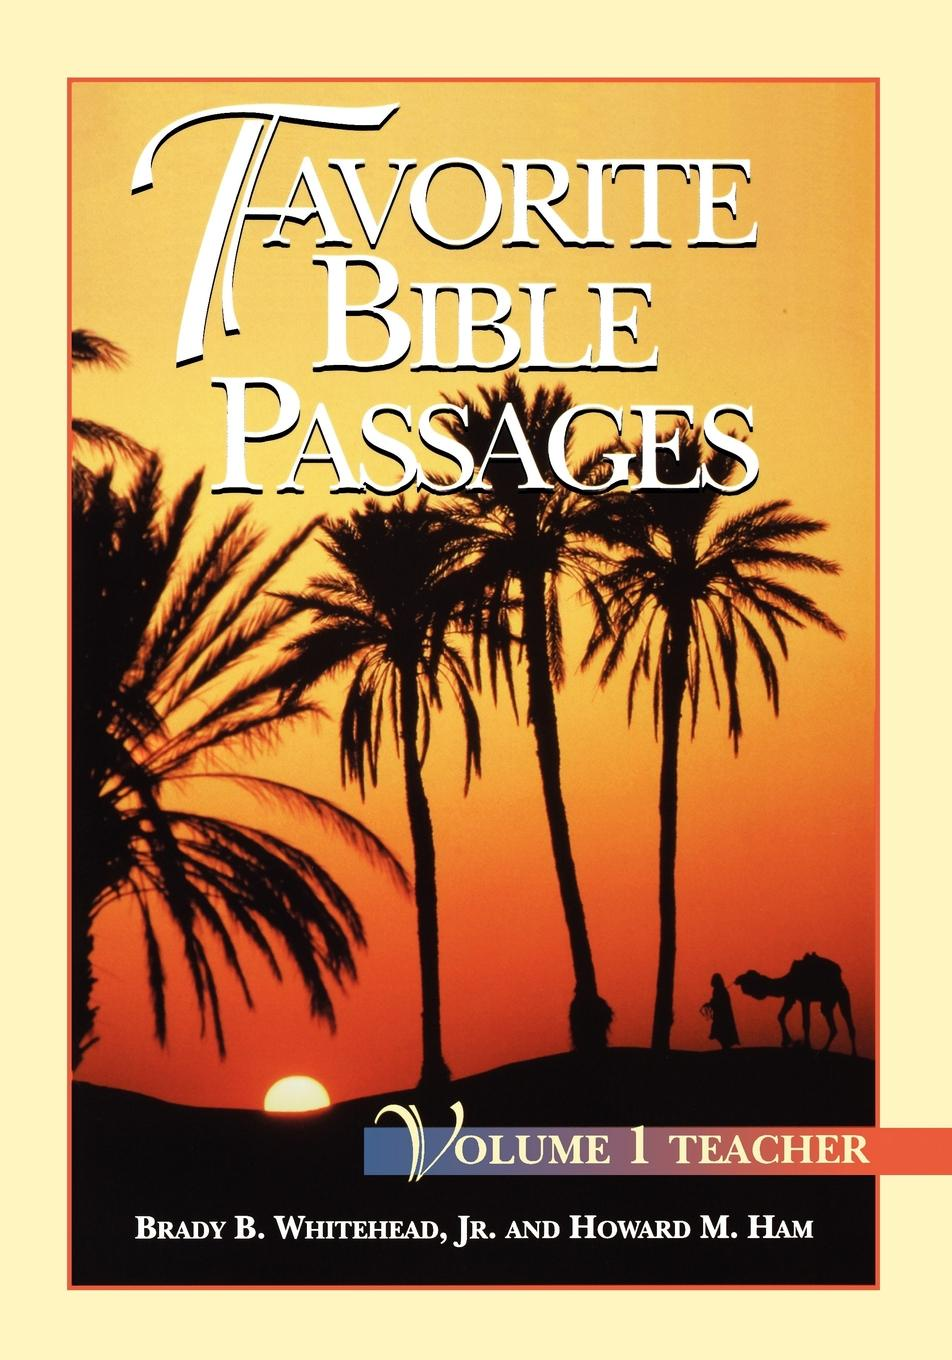 Brady B. Jr. Whitehead, Howard M. Ham Favorite Bible Passages Volume 1 Leader sela jr 614 030 6362